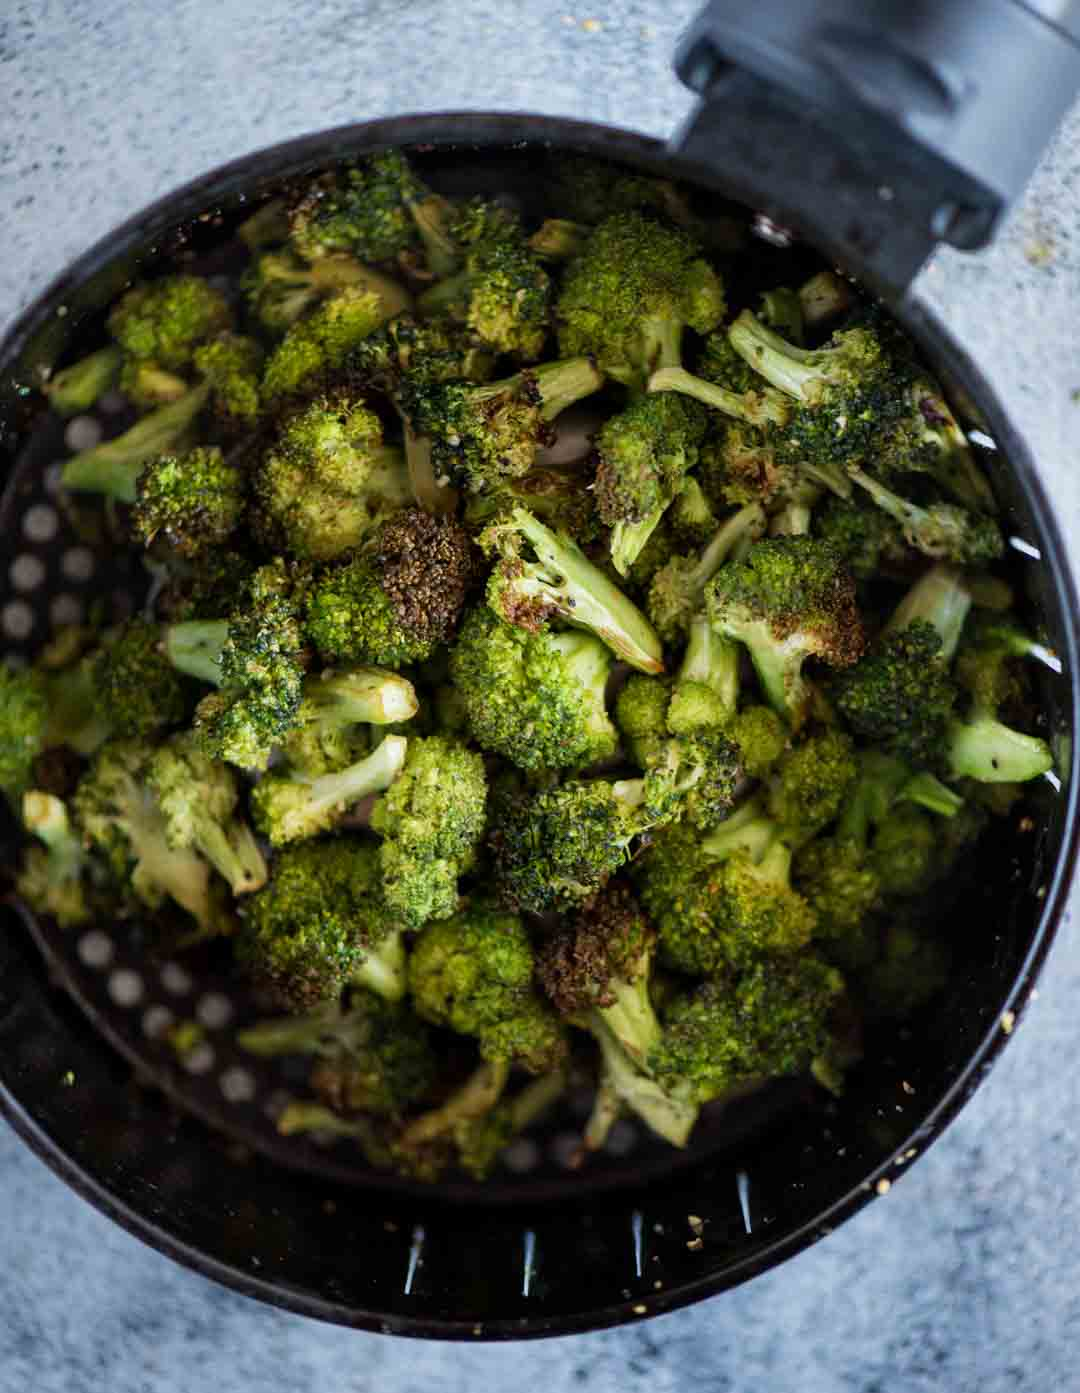 Roasted Broccoli in a pan